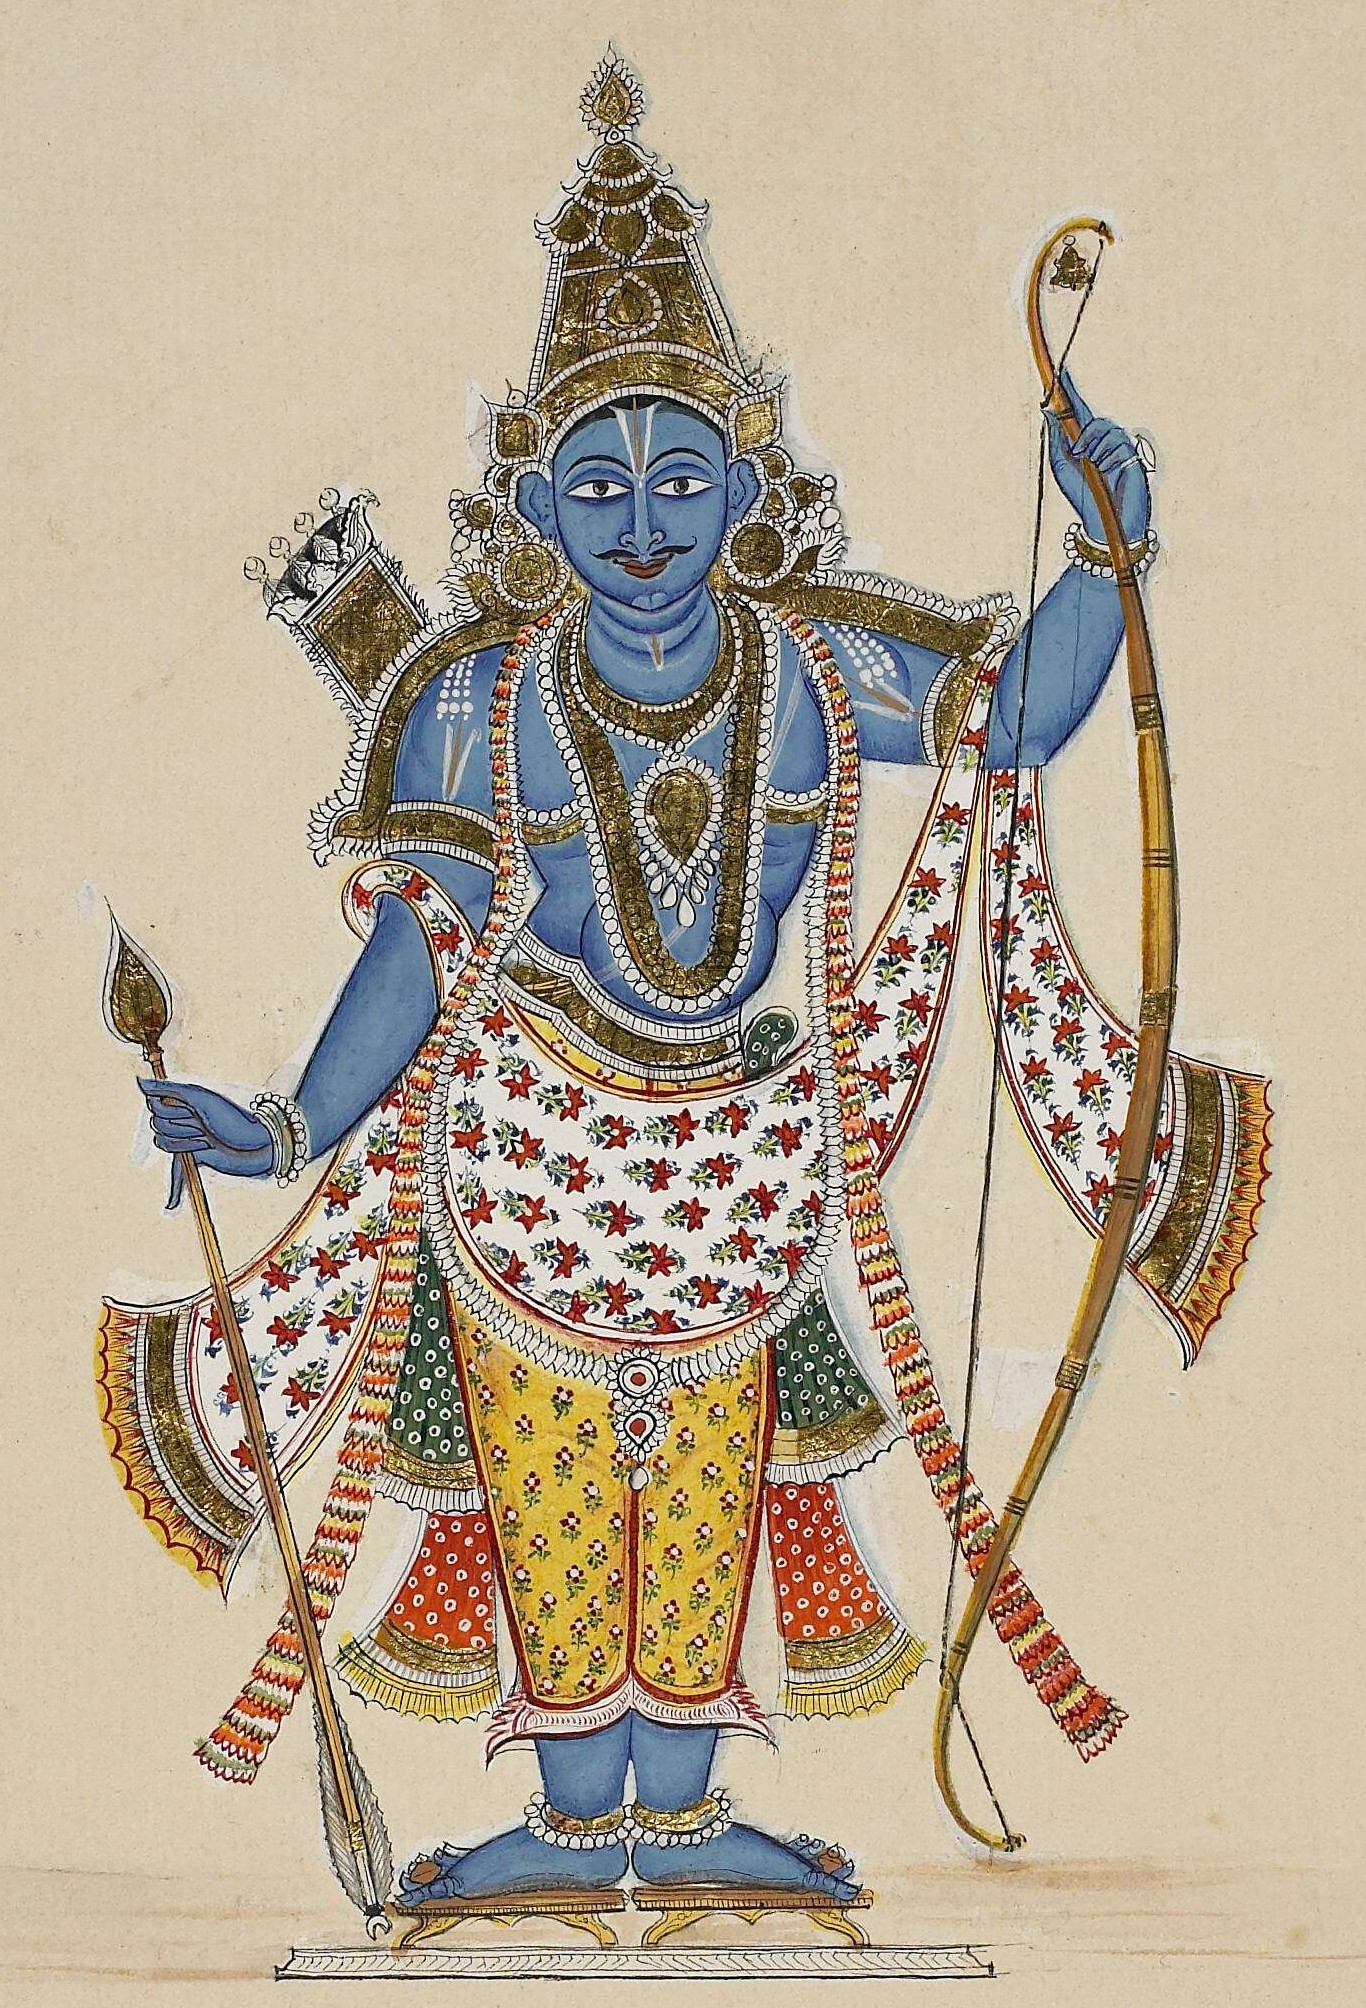 [Bild: Lord_Rama_with_arrows.jpg]